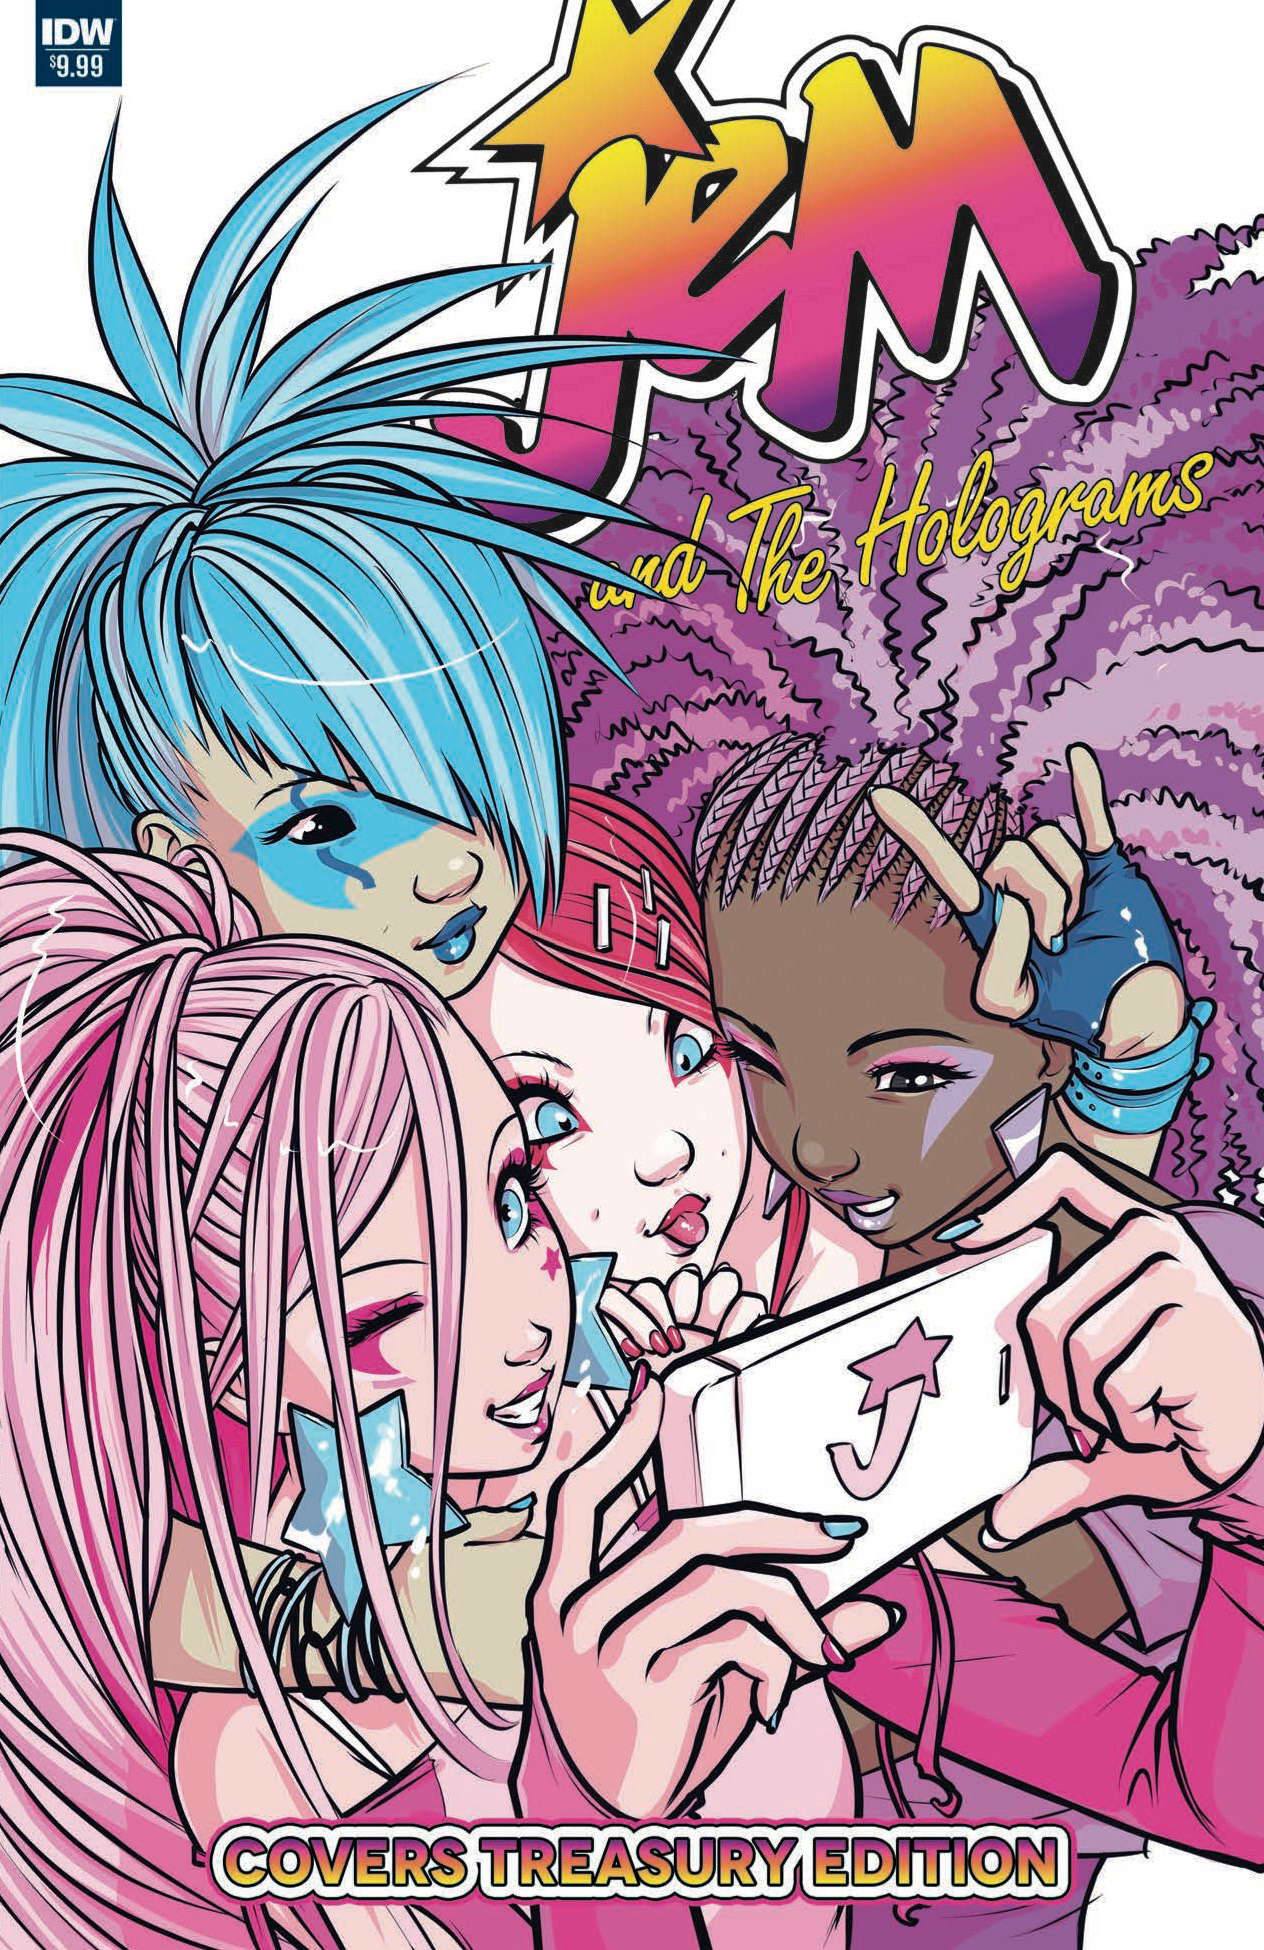 JEM & THE HOLOGRAMS COVERS TREASURY ED #1